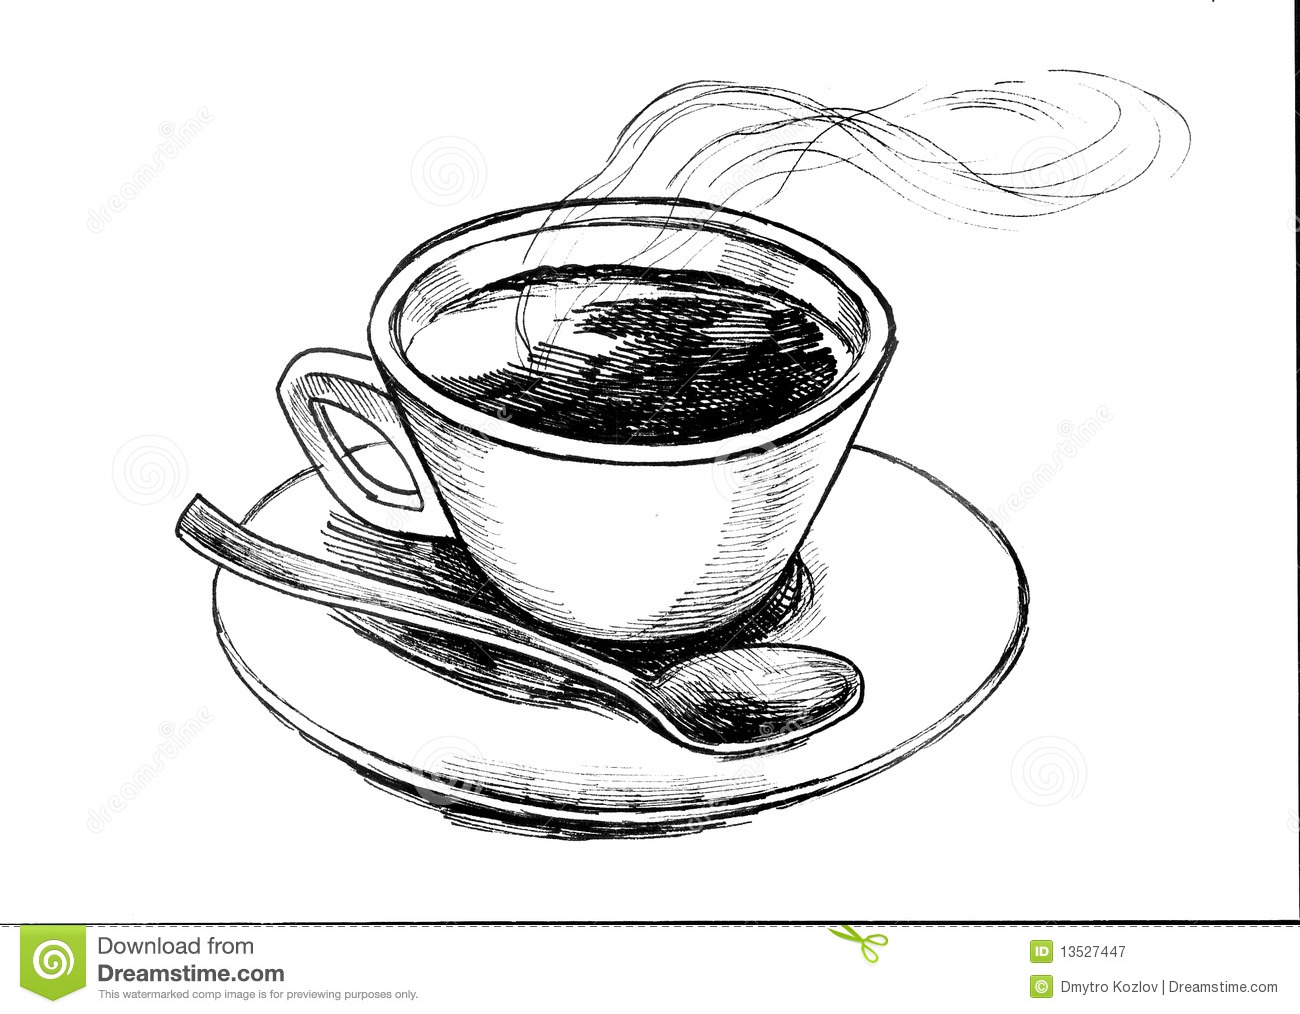 Coffee cup sketch - Royalty Free Stock Photo